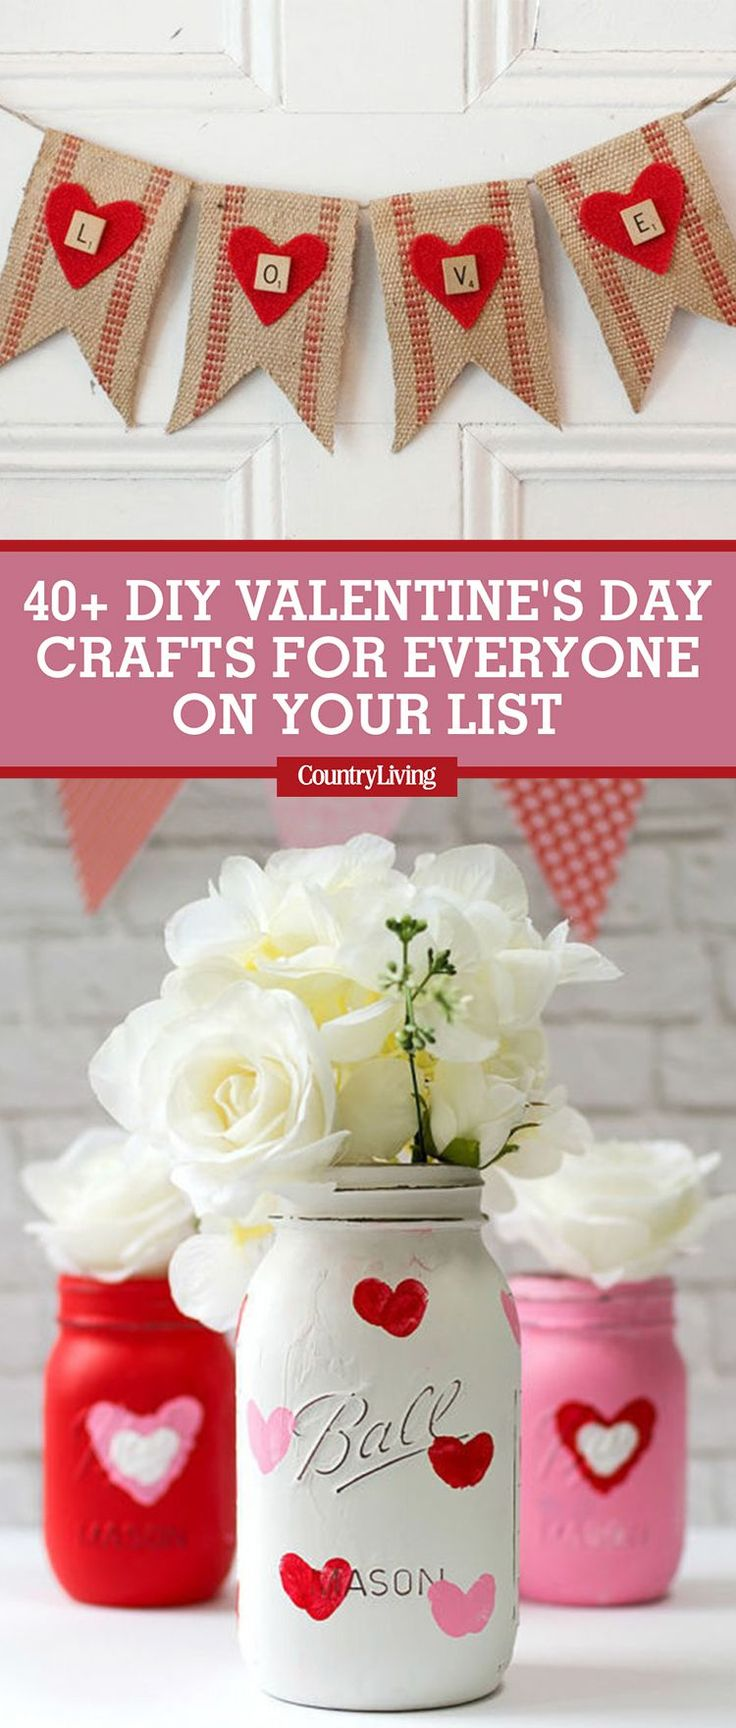 42 DIY Valentineu0027s Day Crafts For Everyone